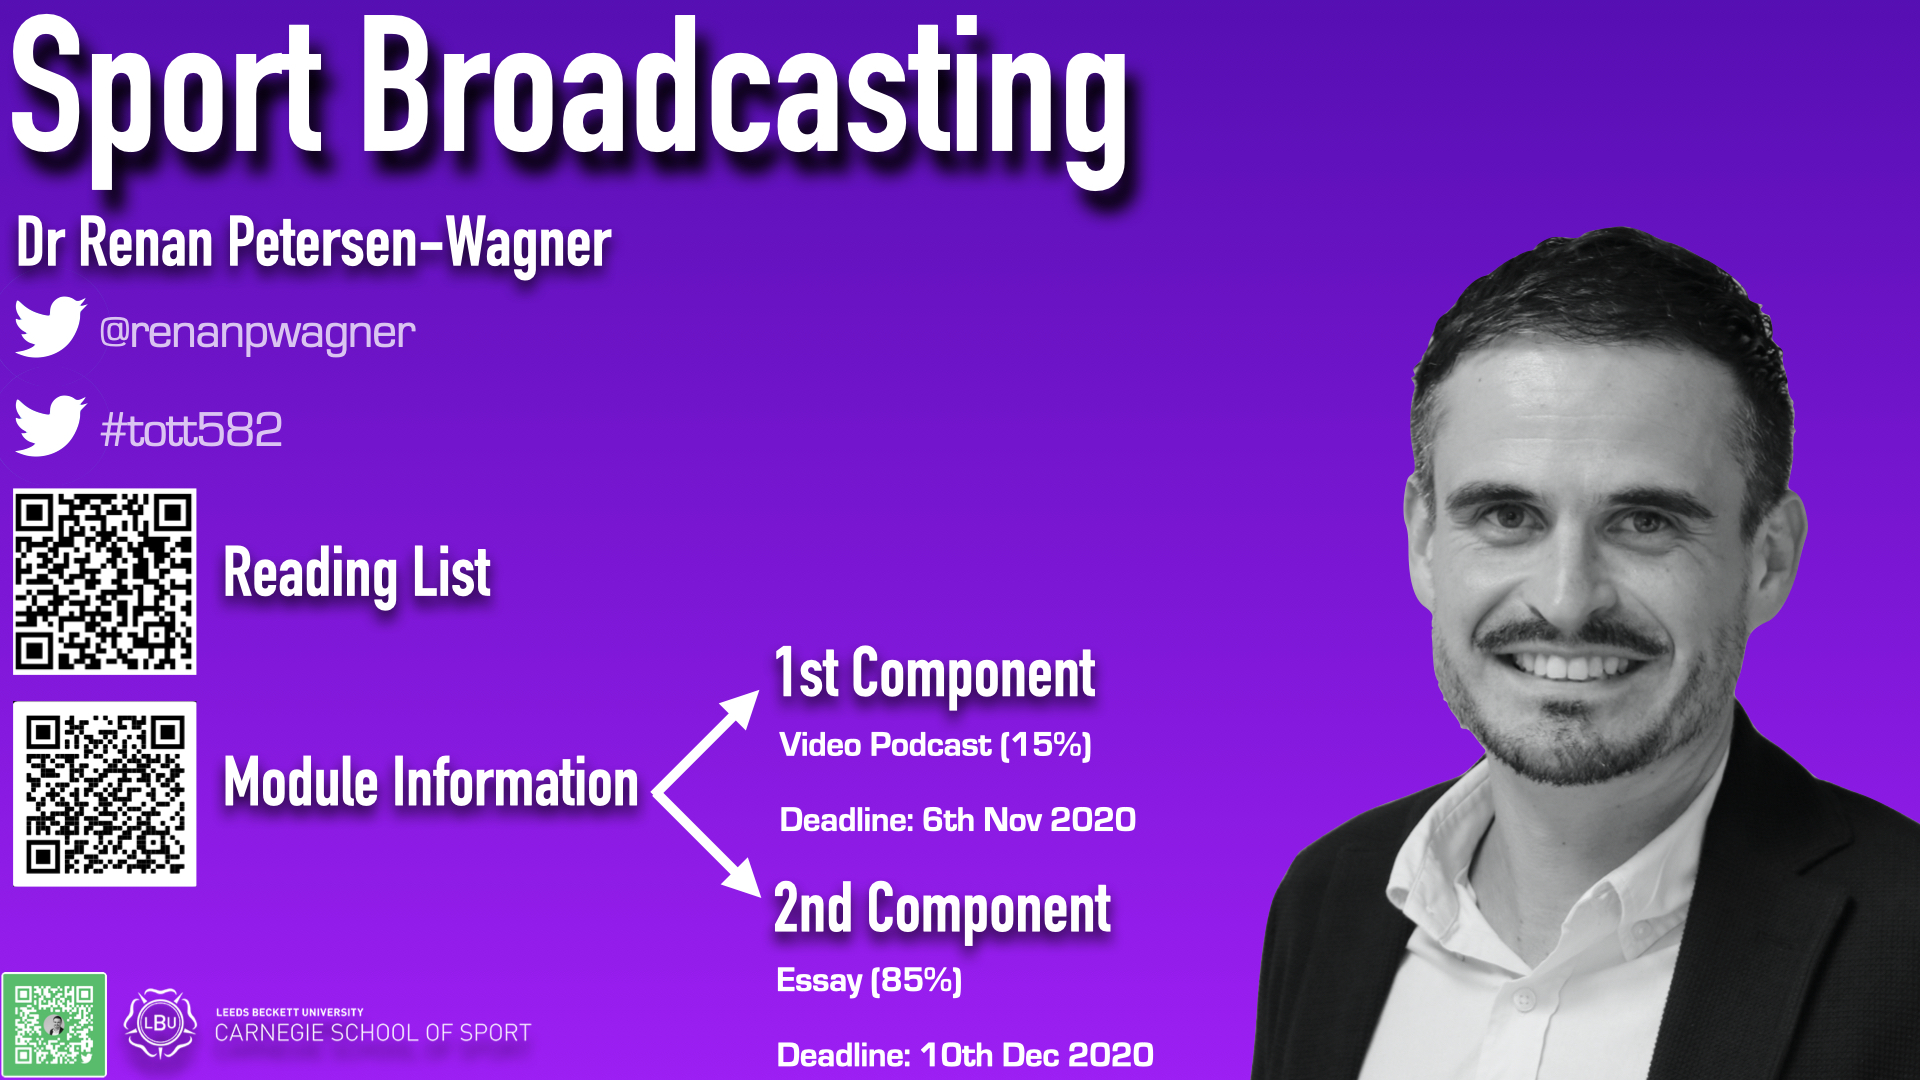 shows the information about Sport Broadcasting module for Sport Marketing and Sport Business Management students; has the twitter handle of the module leader (@renanpwagner), the twitter hashtag (#tott582), QR code to the reading list, and the assessment components to the module